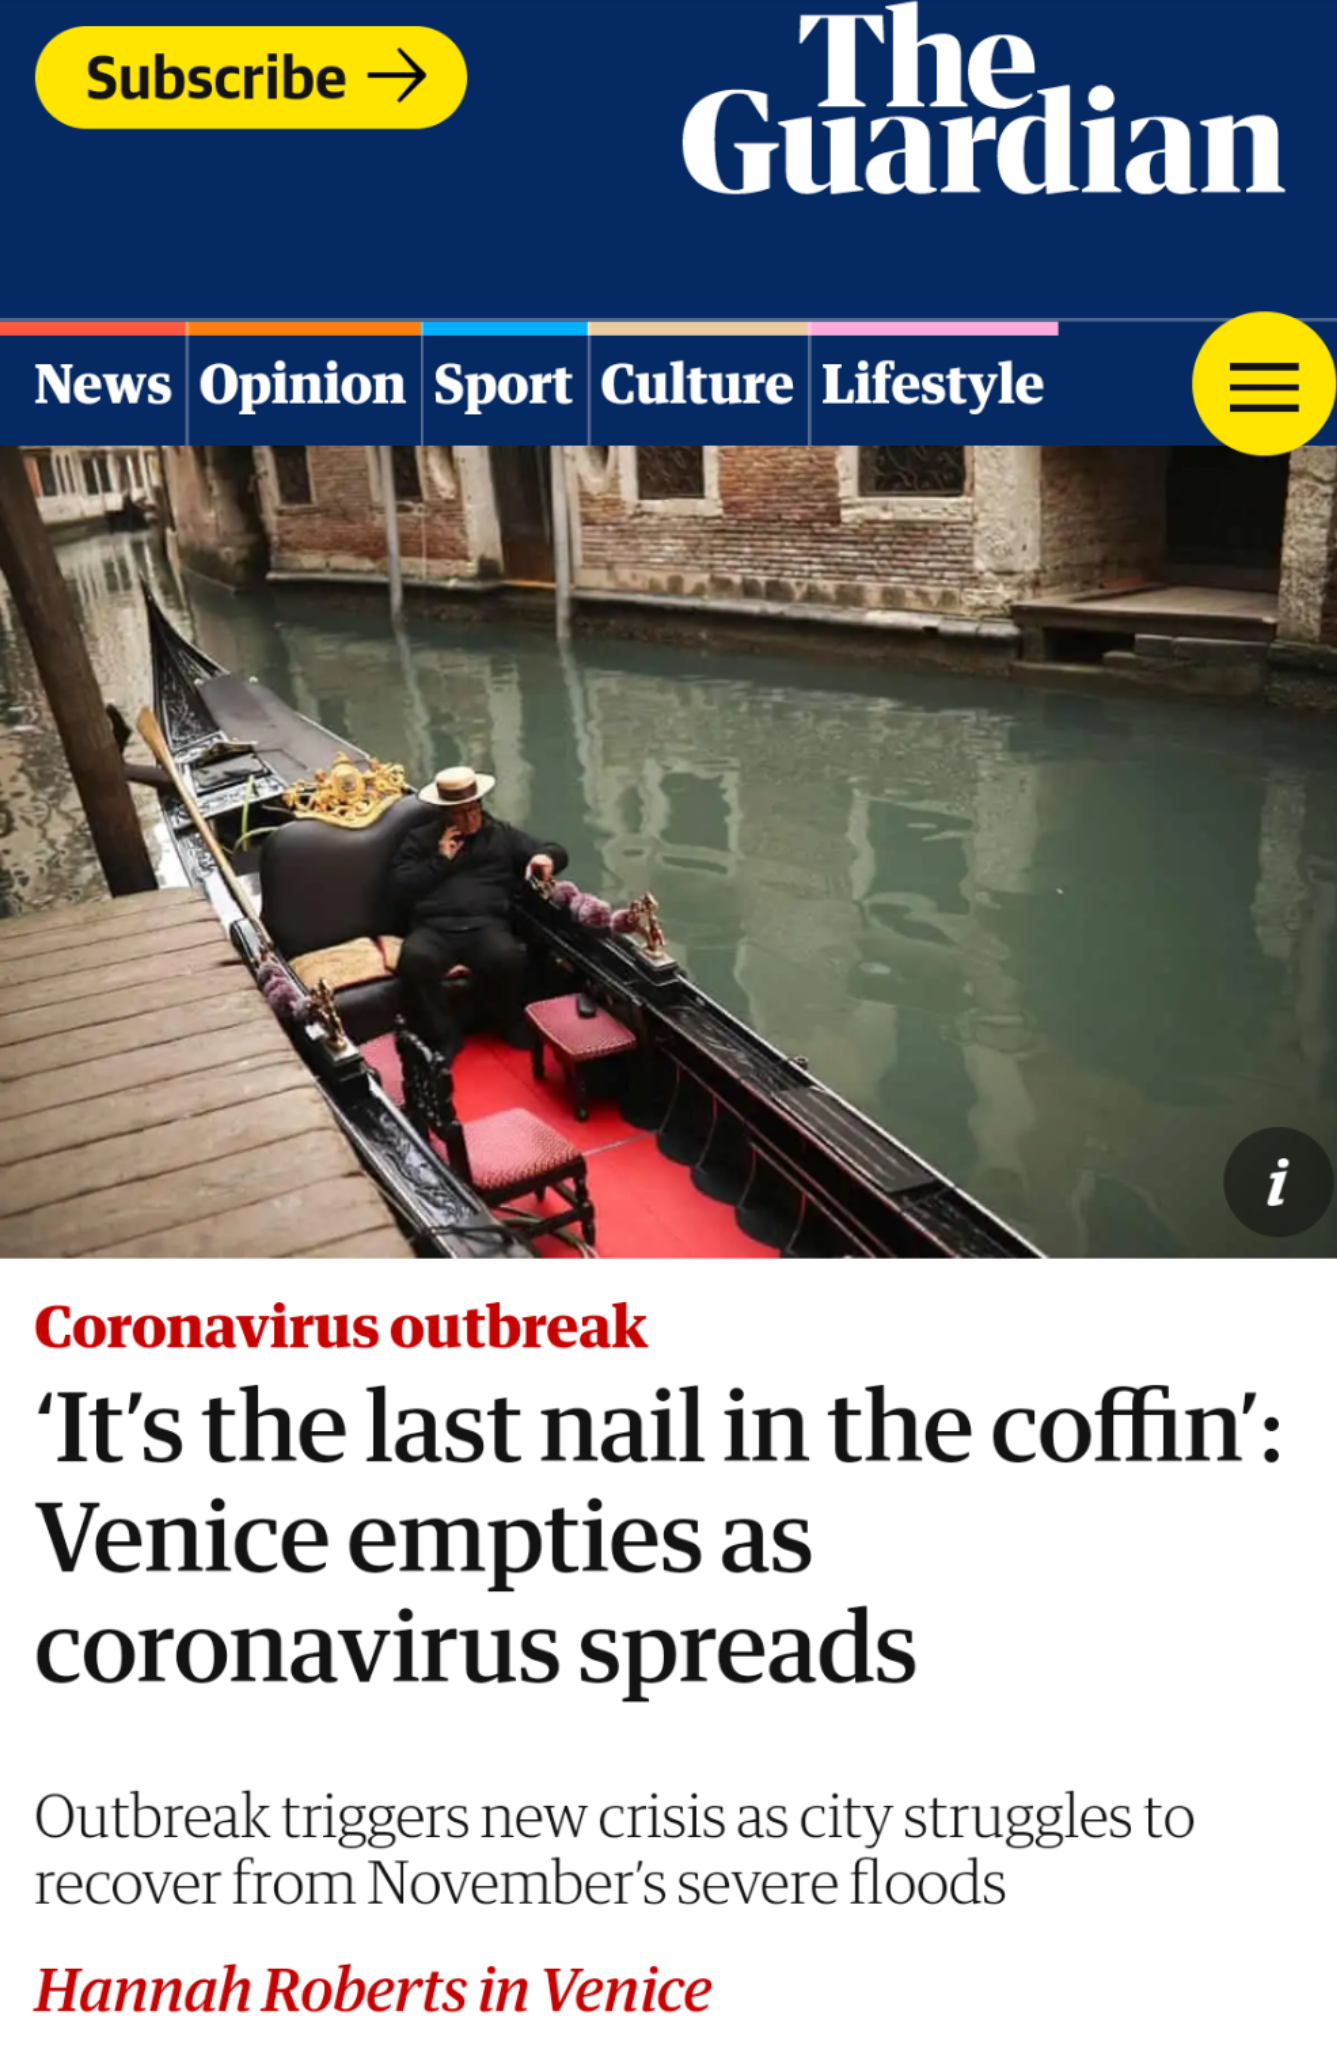 The Guardian 29.02.2020: 'It's The Last Nail In The Coffin': Venice Empties As Coronavirus Spreads